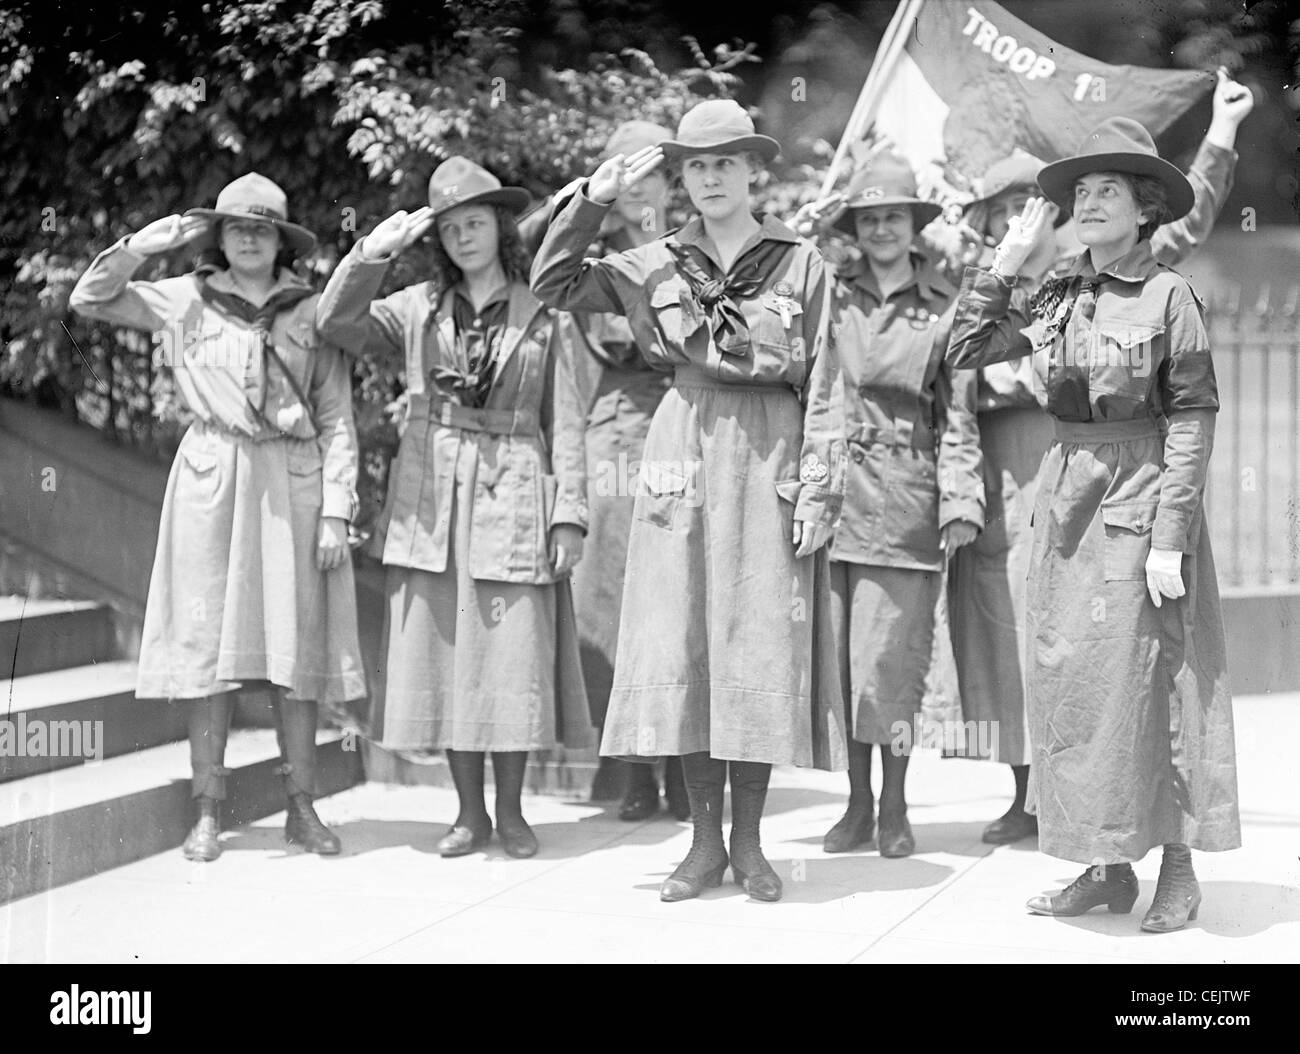 Juliette Low, founder Girl Scouts America - Stock Image